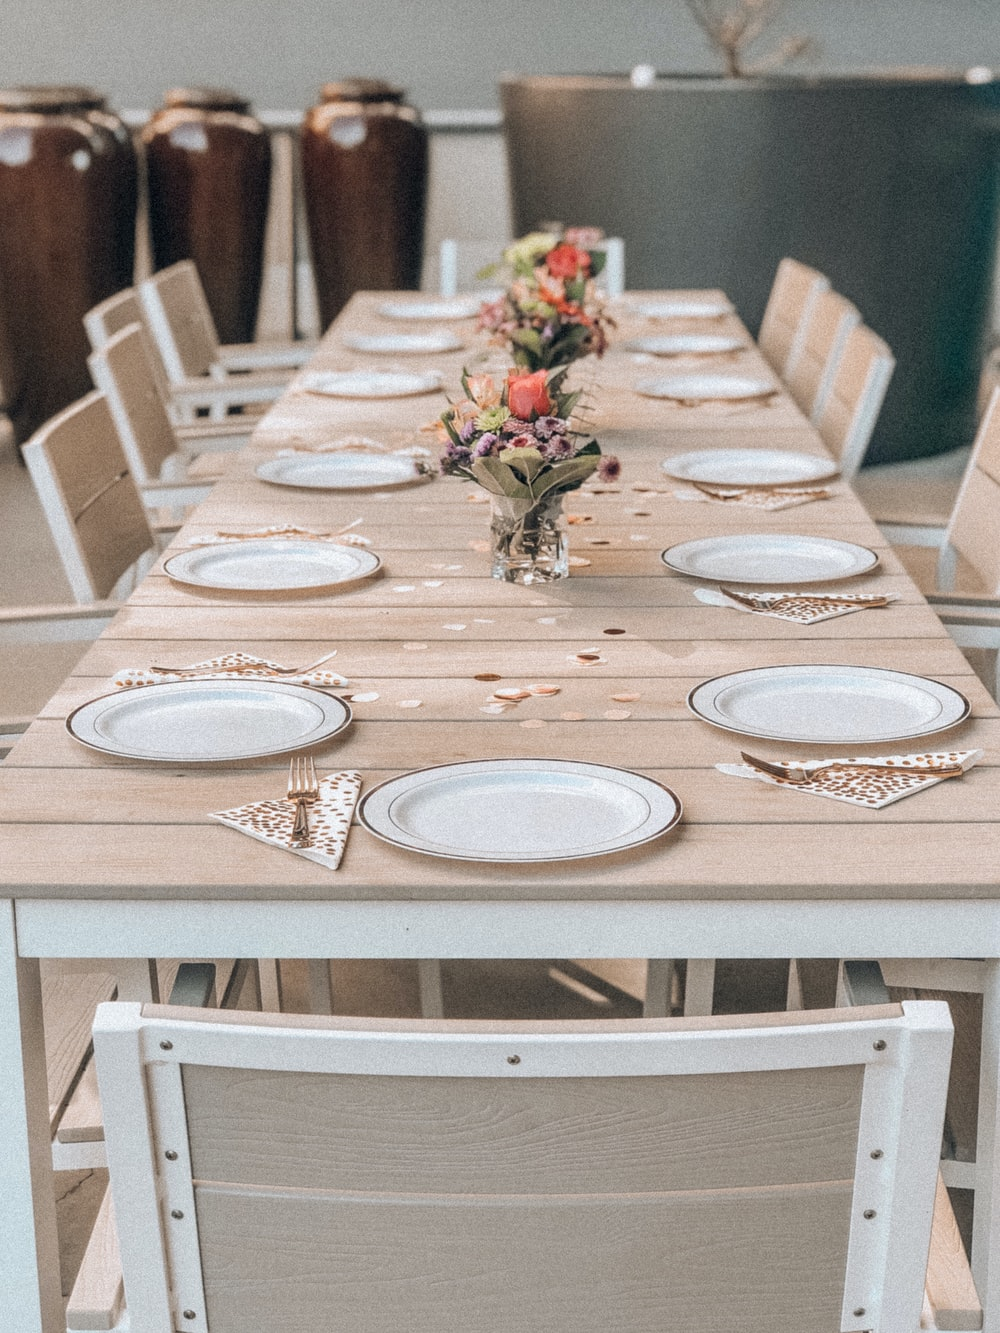 white ceramic plates on dining table with chairs